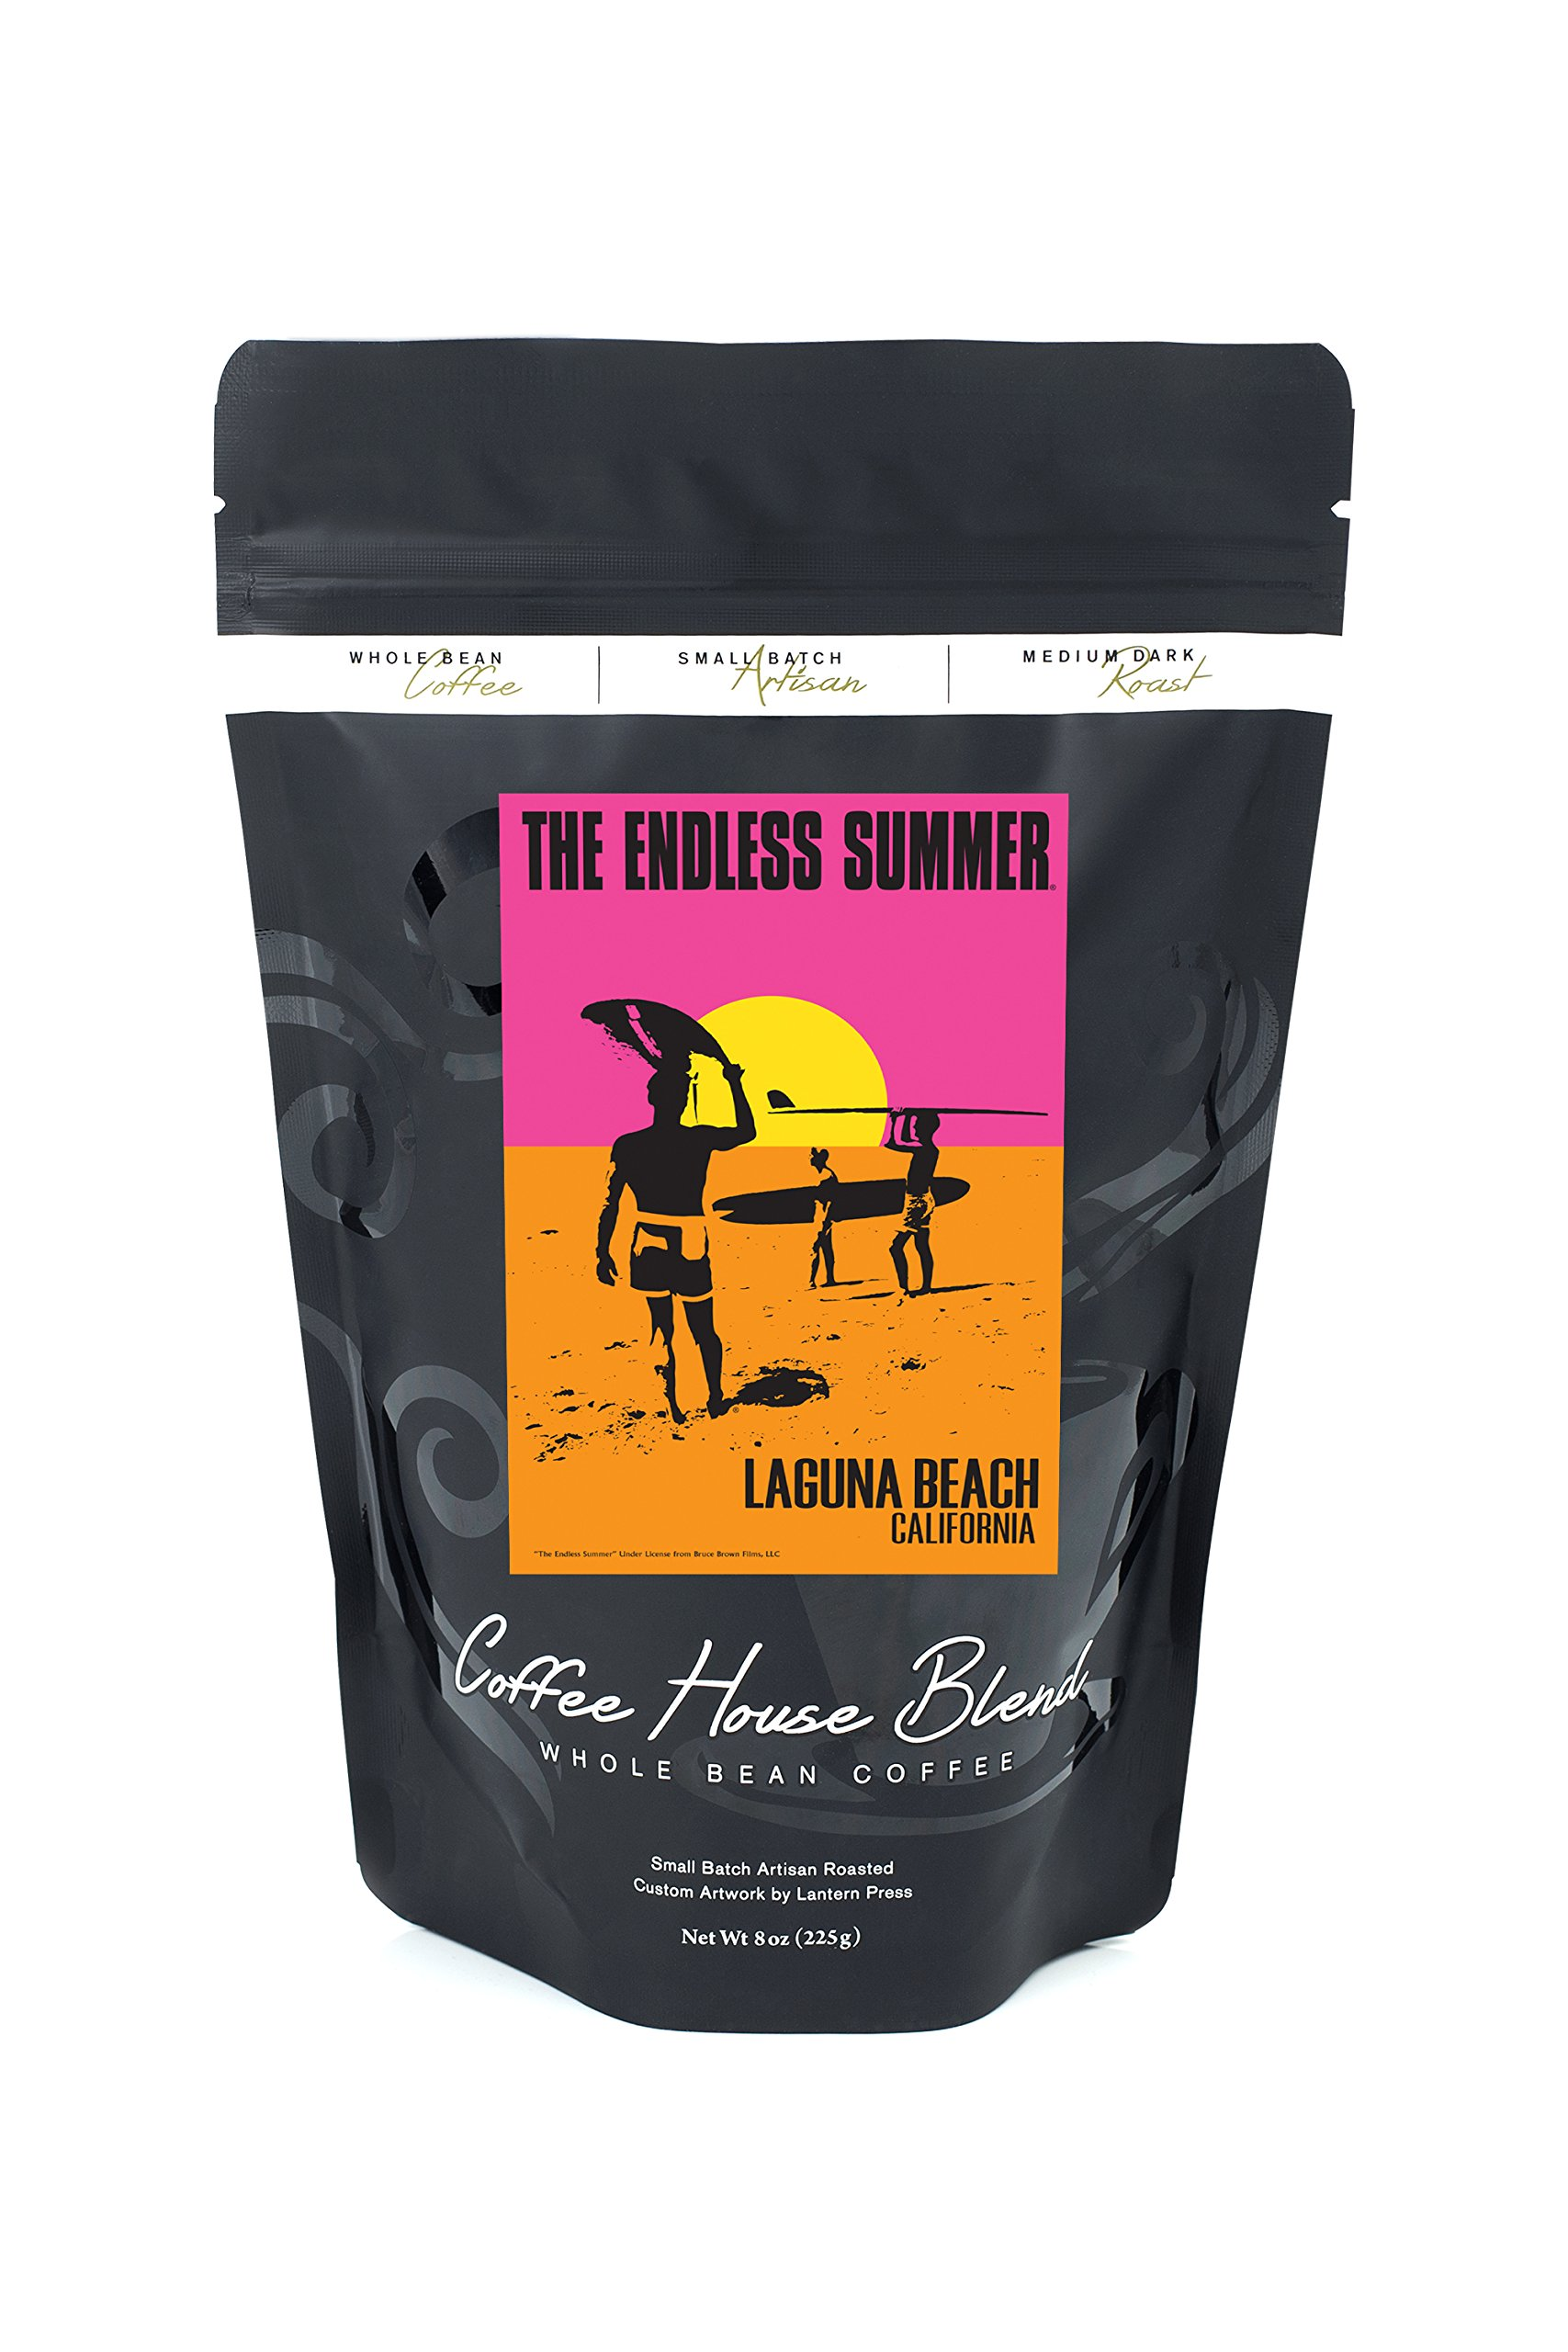 Laguna Beach, California - The Endless Summer - Original Movie Poster (8oz Whole Bean Small Batch Artisan Coffee - Bold & Strong Medium Dark Roast w/ Artwork)